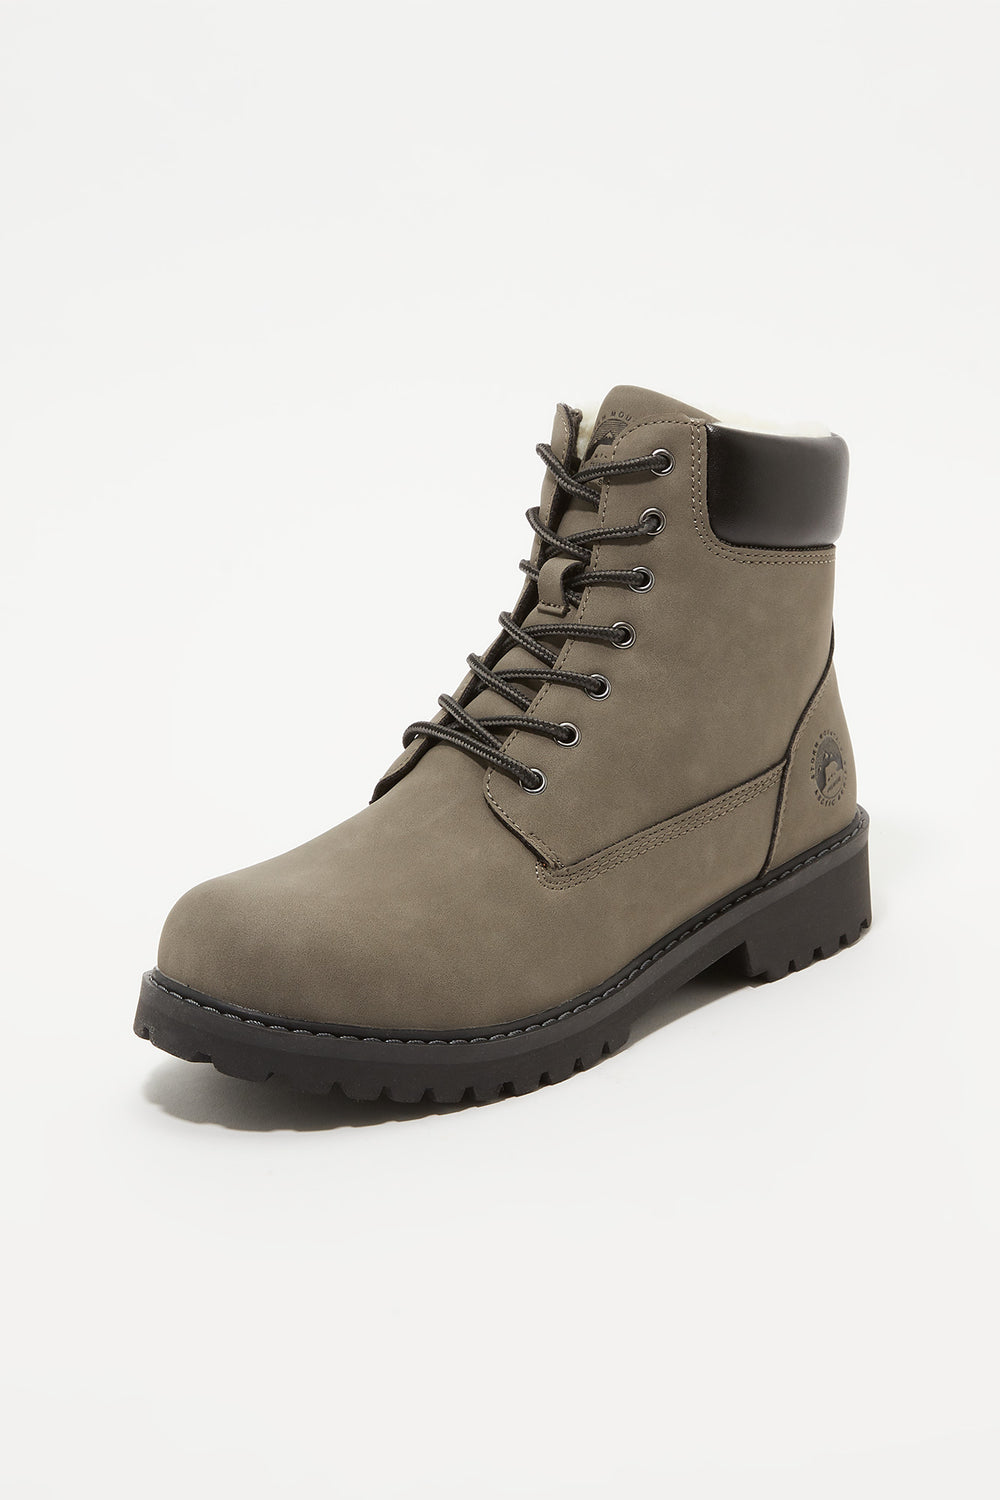 Storm Mountain Mens Faux-Fur Hiker Boots Heather Grey